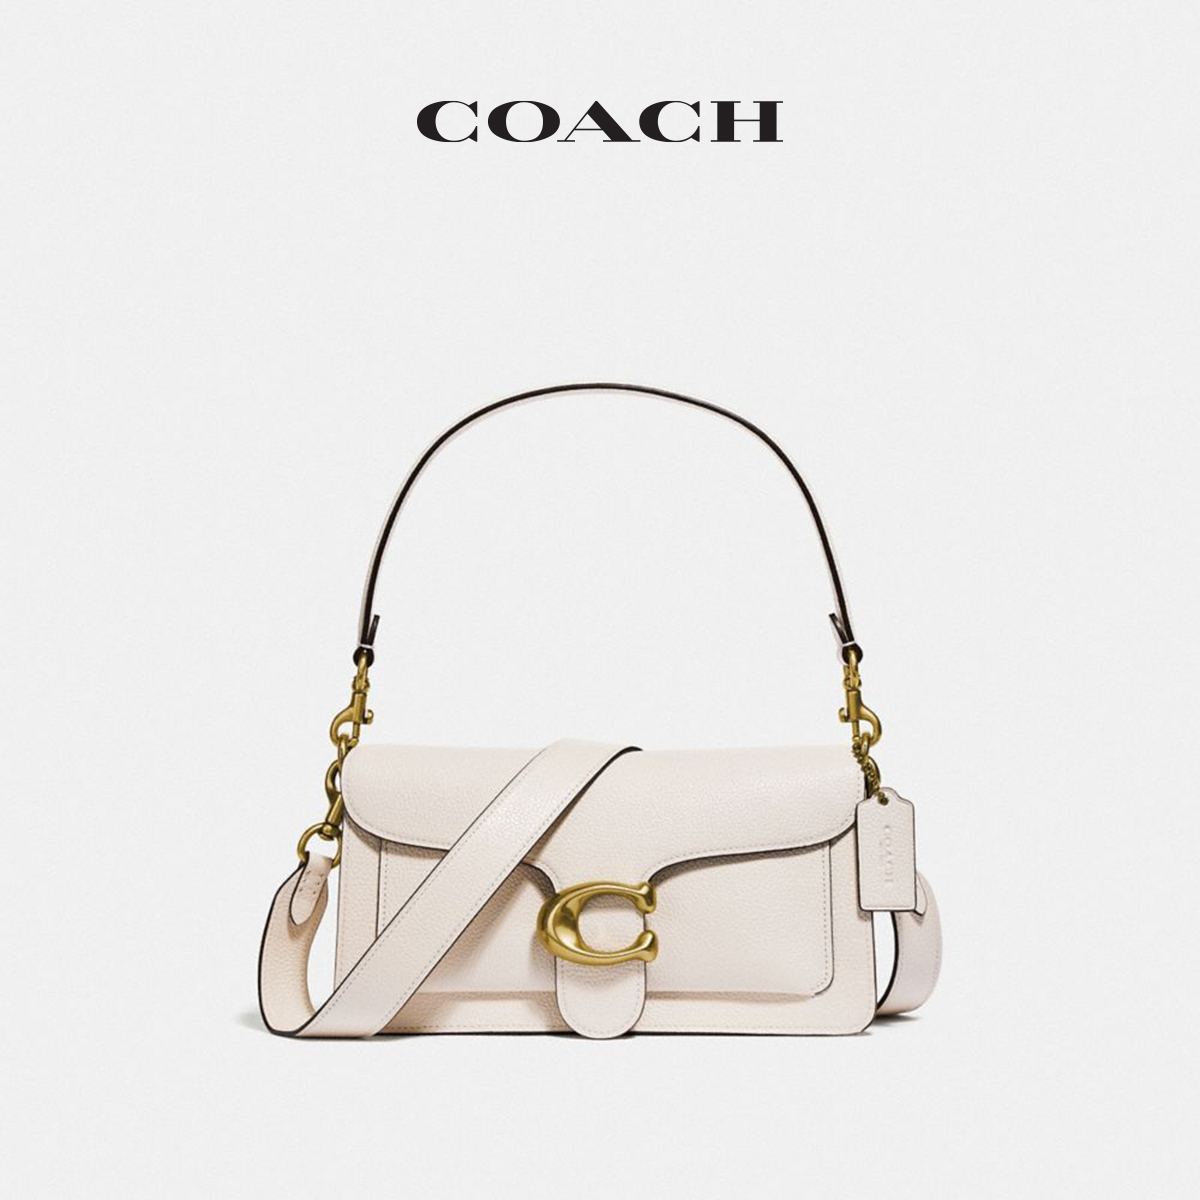 COACH/ Coach Ladies Fashion Trend Polished Pebble Pattern TABBY Series No. 26 Shoulder Bag Messenger Bag